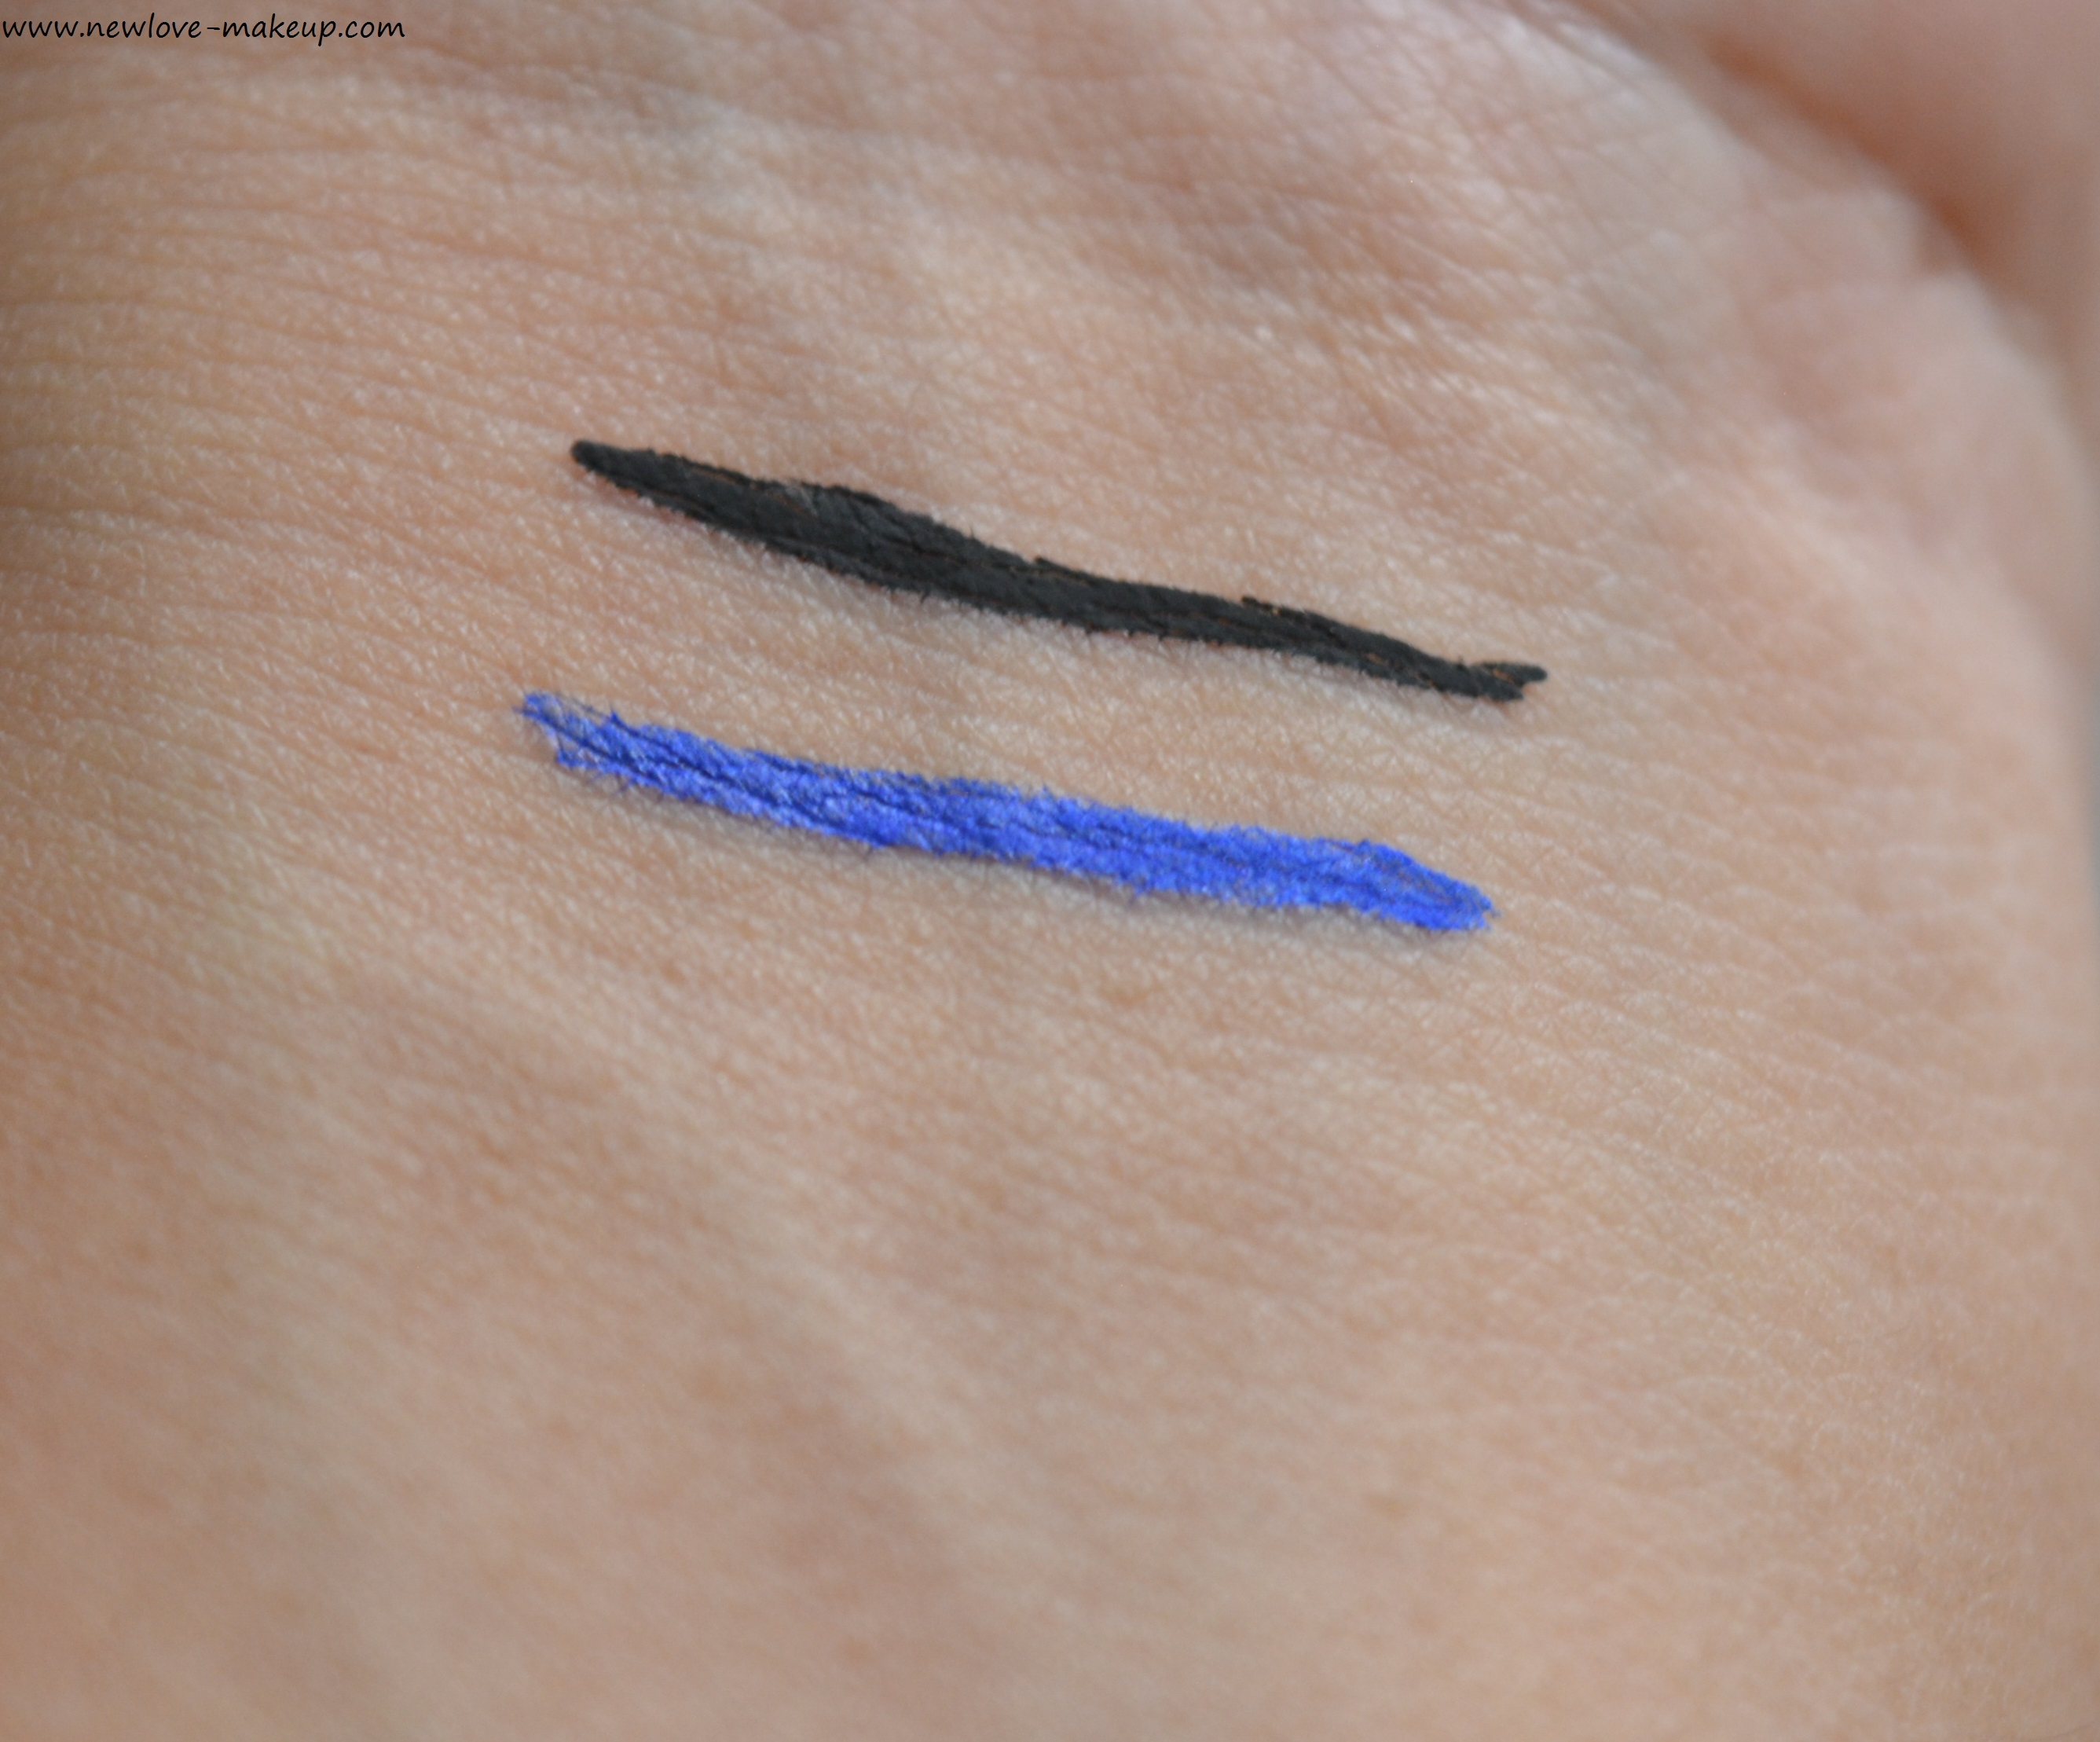 Faces Ultime Pro Matte Play Eyeliner Black/Blue Review, Swatches